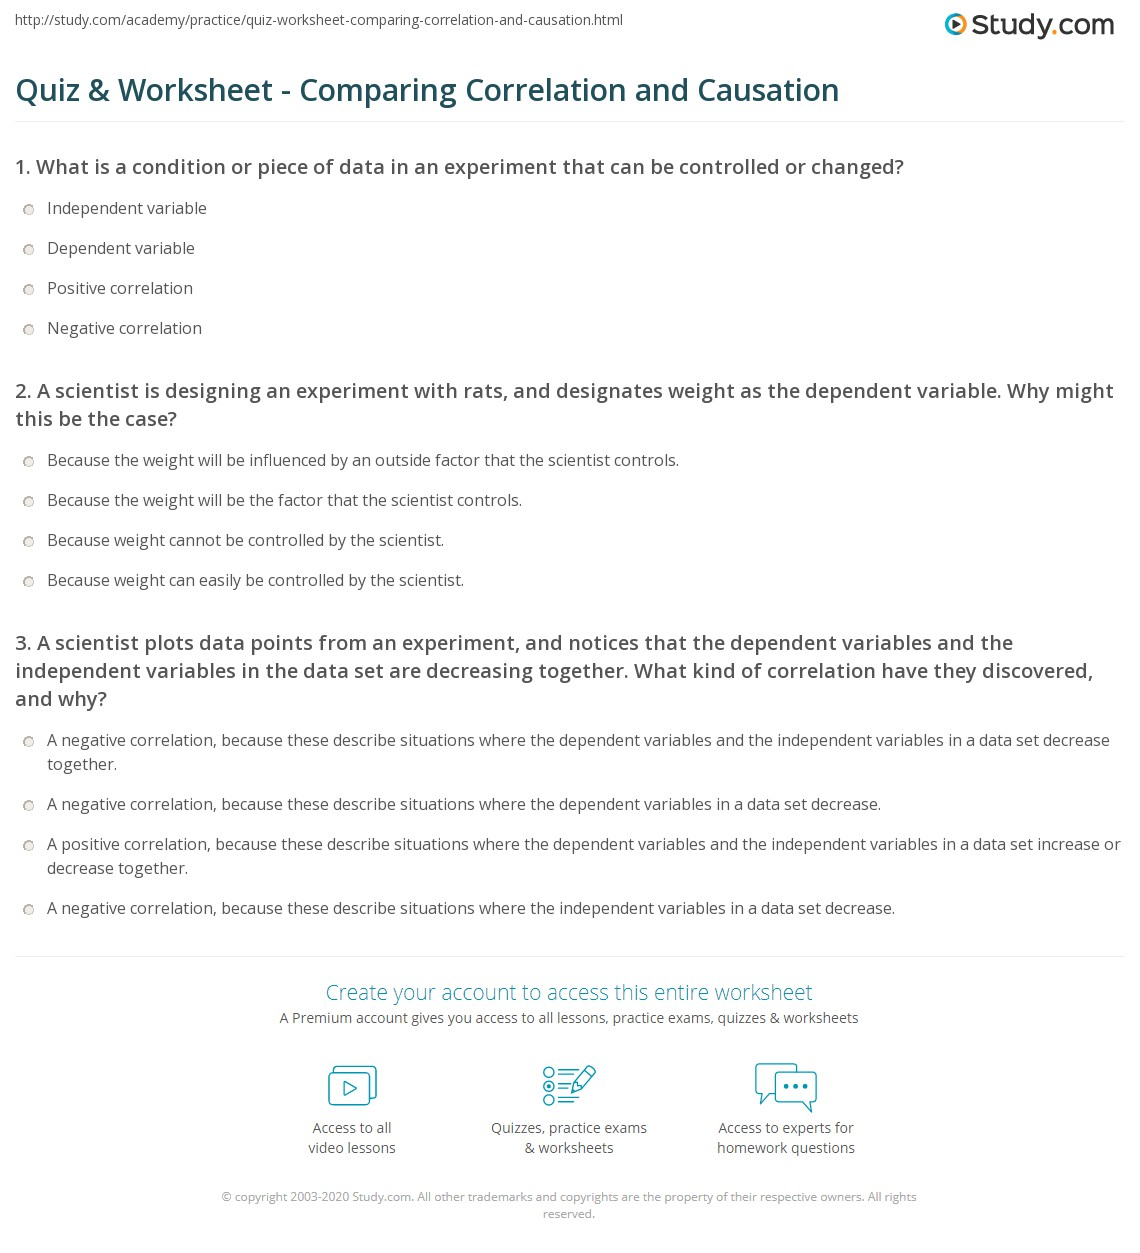 Aldiablosus  Pleasant Quiz Amp Worksheet  Comparing Correlation And Causation  Studycom With Licious Print Correlation Vs Causation Differences Amp Definition Worksheet With Appealing Adding Mixed Numbers With Like Denominators Worksheets Also Design An Experiment Worksheet In Addition Reading Worksheets For Th Grade And Lewis Dot Diagram Worksheet With Answers As Well As Mixed Addition And Subtraction With Regrouping Worksheets Additionally Molecular Mass And Mole Calculations Worksheet Answers From Studycom With Aldiablosus  Licious Quiz Amp Worksheet  Comparing Correlation And Causation  Studycom With Appealing Print Correlation Vs Causation Differences Amp Definition Worksheet And Pleasant Adding Mixed Numbers With Like Denominators Worksheets Also Design An Experiment Worksheet In Addition Reading Worksheets For Th Grade From Studycom